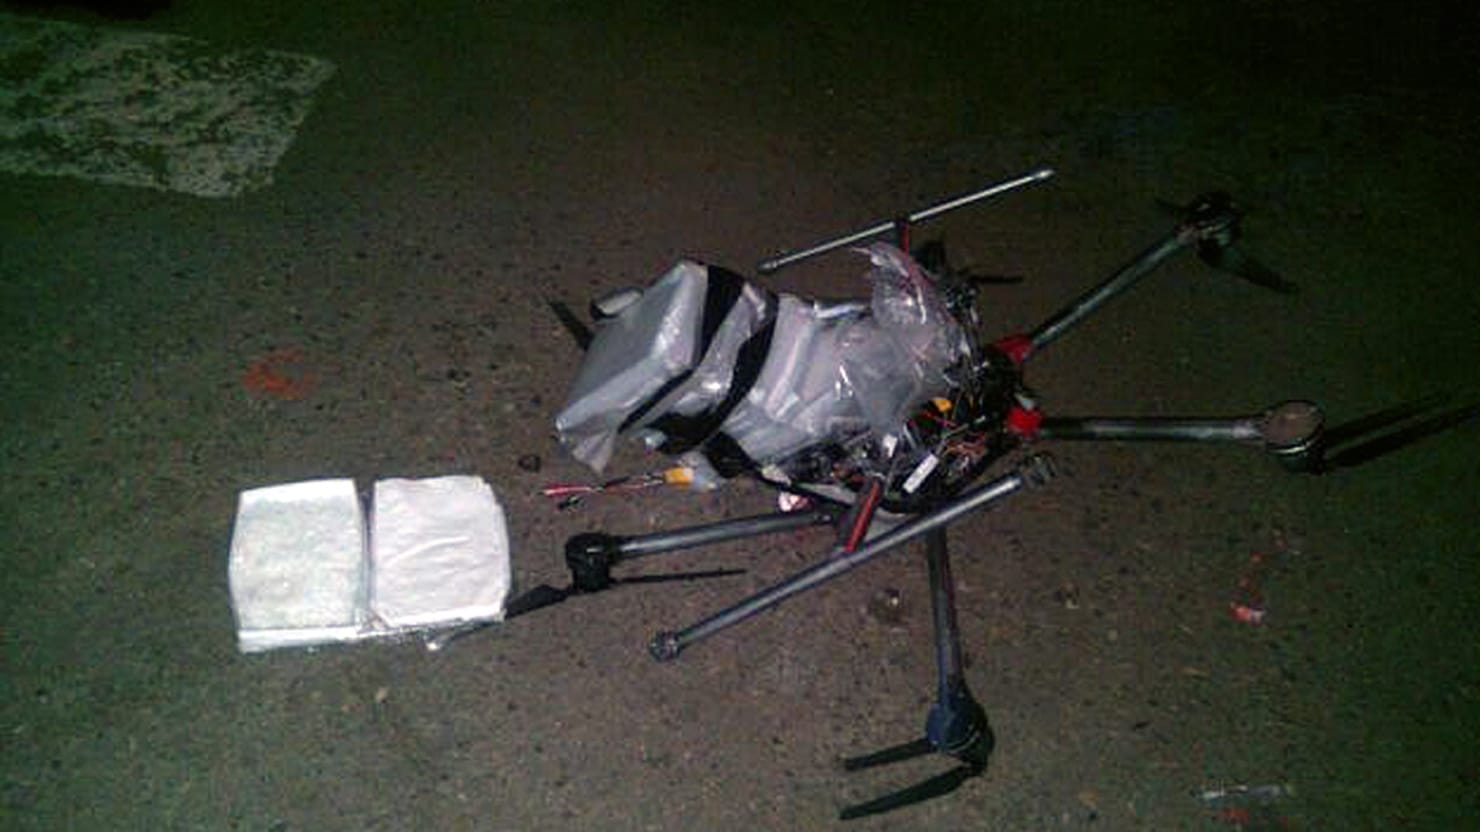 A Crashed Drone Carrying Six Pounds Of Meth Has People Buzzing But The DEA Much Bigger Worries